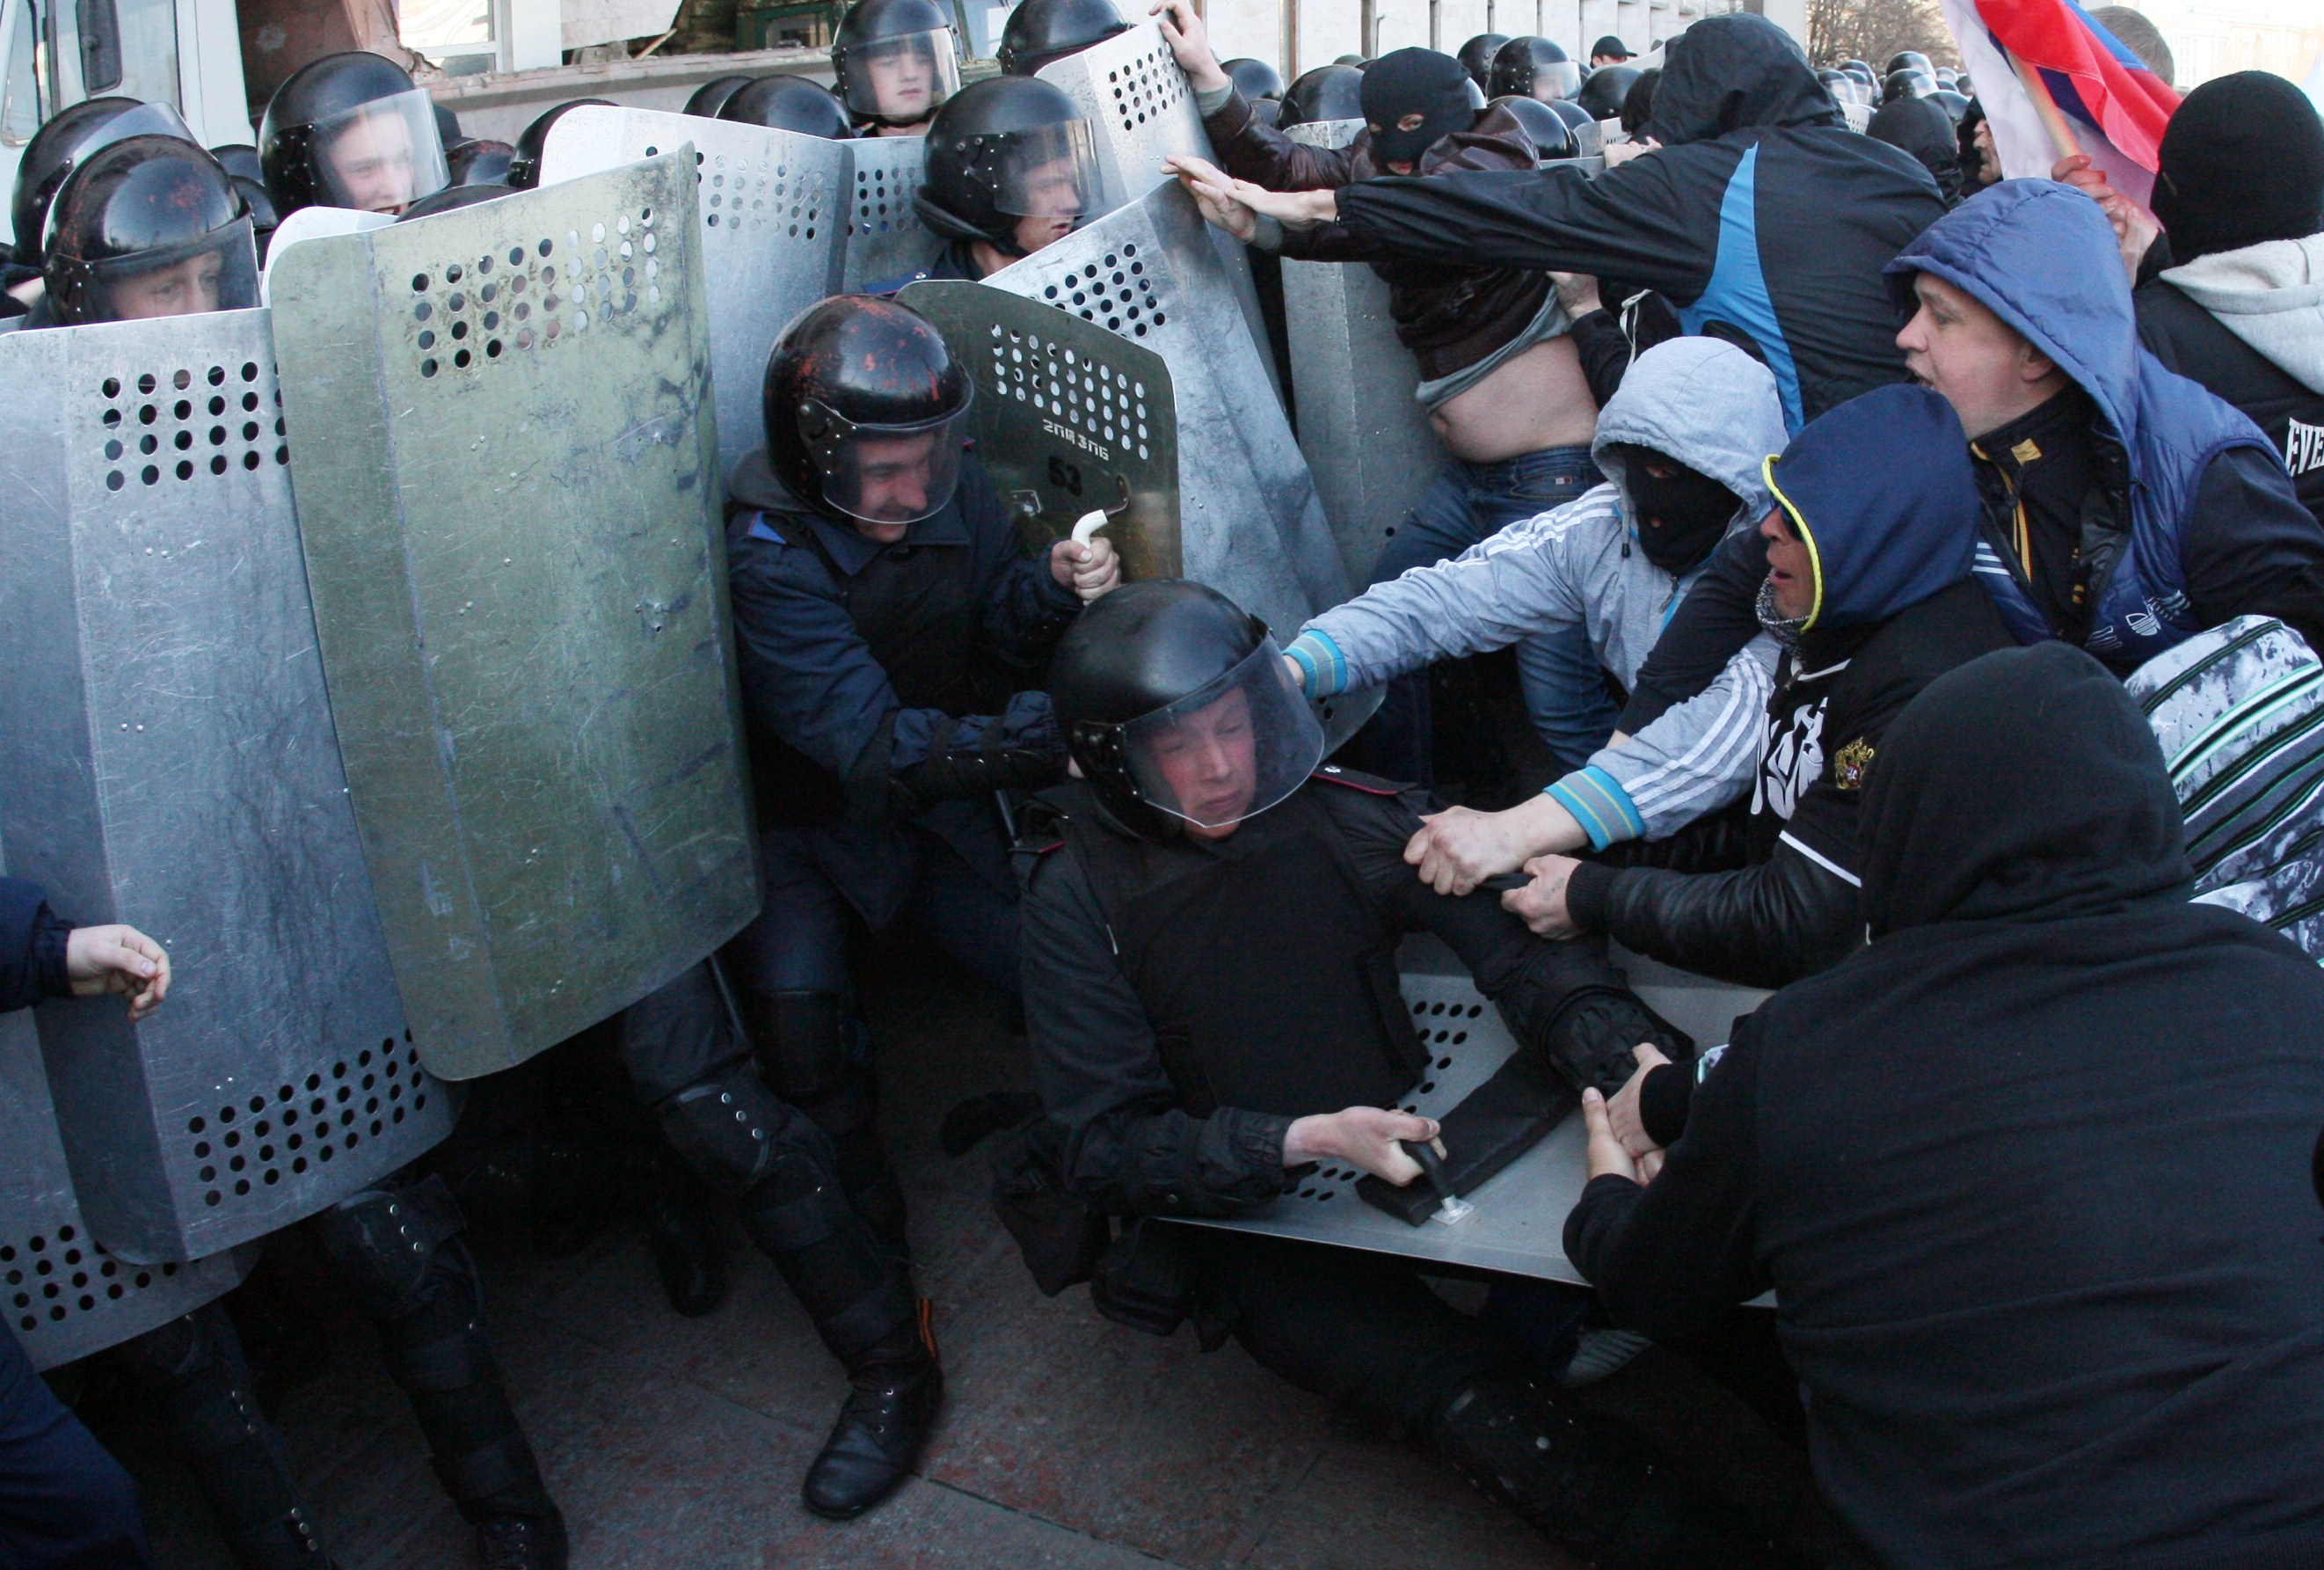 Pro-Russian supporters clash with members of the riot police as they storm the regional administration building in Donetsk, Ukraine, on April 6, 2014